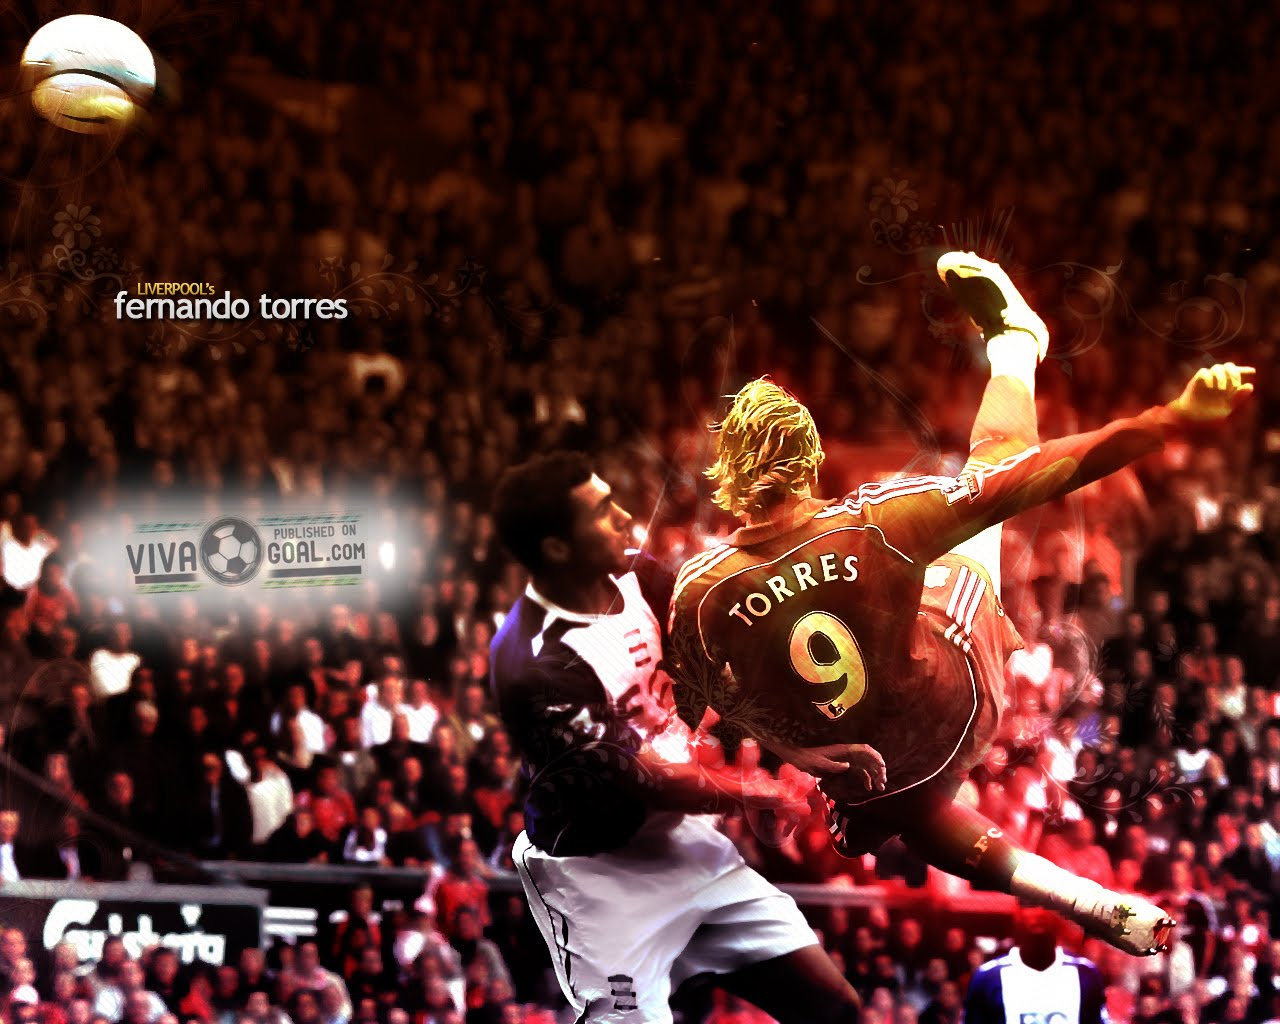 world cup,world cup 2010, South Africa, football, soccer, liverpool wallpaper 2010 Tores